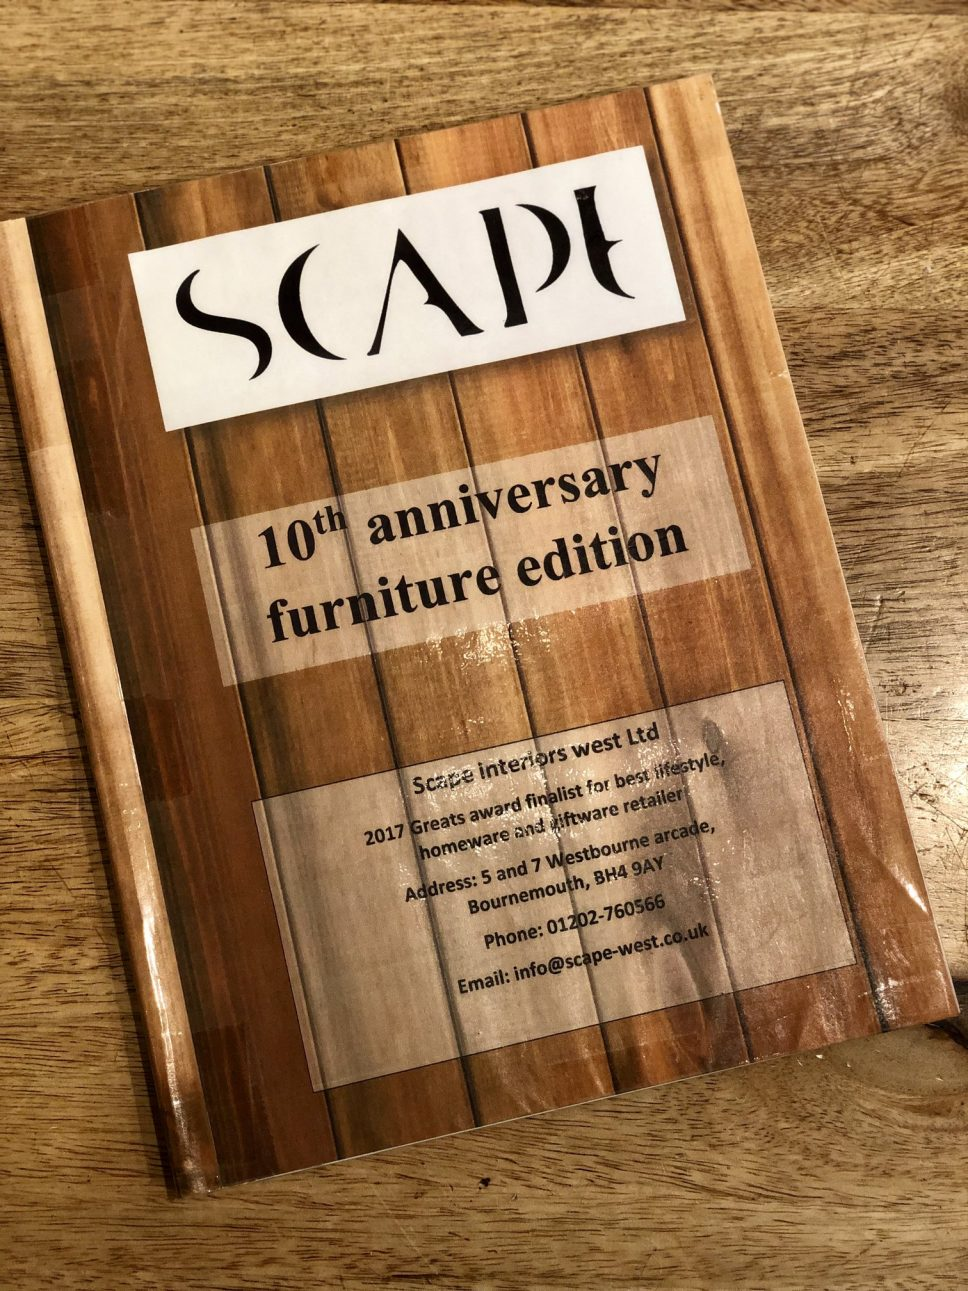 Scape 10th annivesary furniture